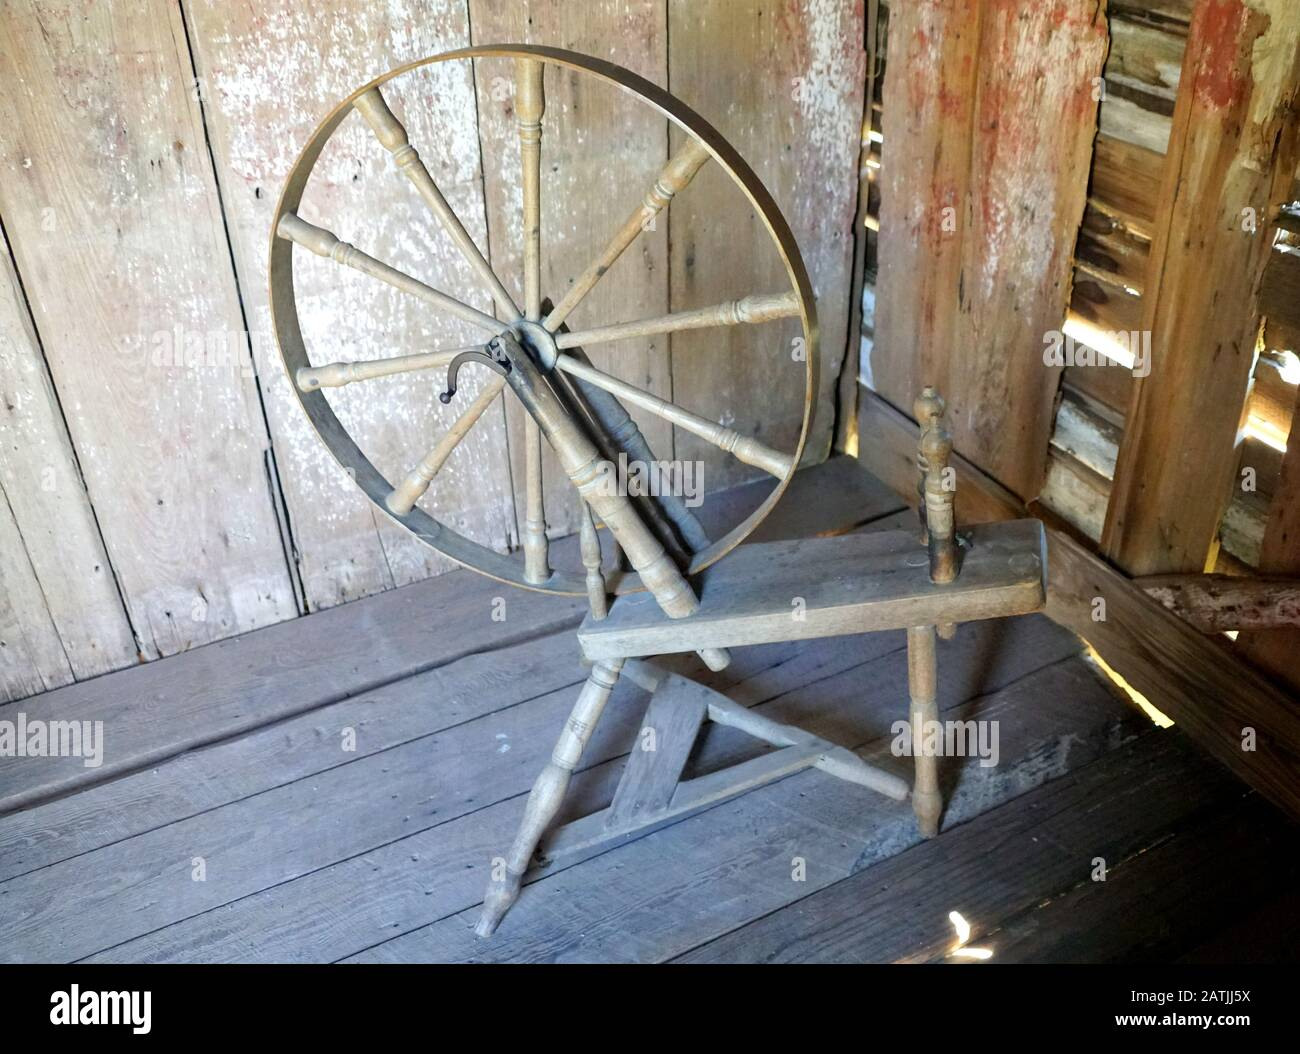 An Old Spinning Wheel For Sewing Stock Photo Alamy